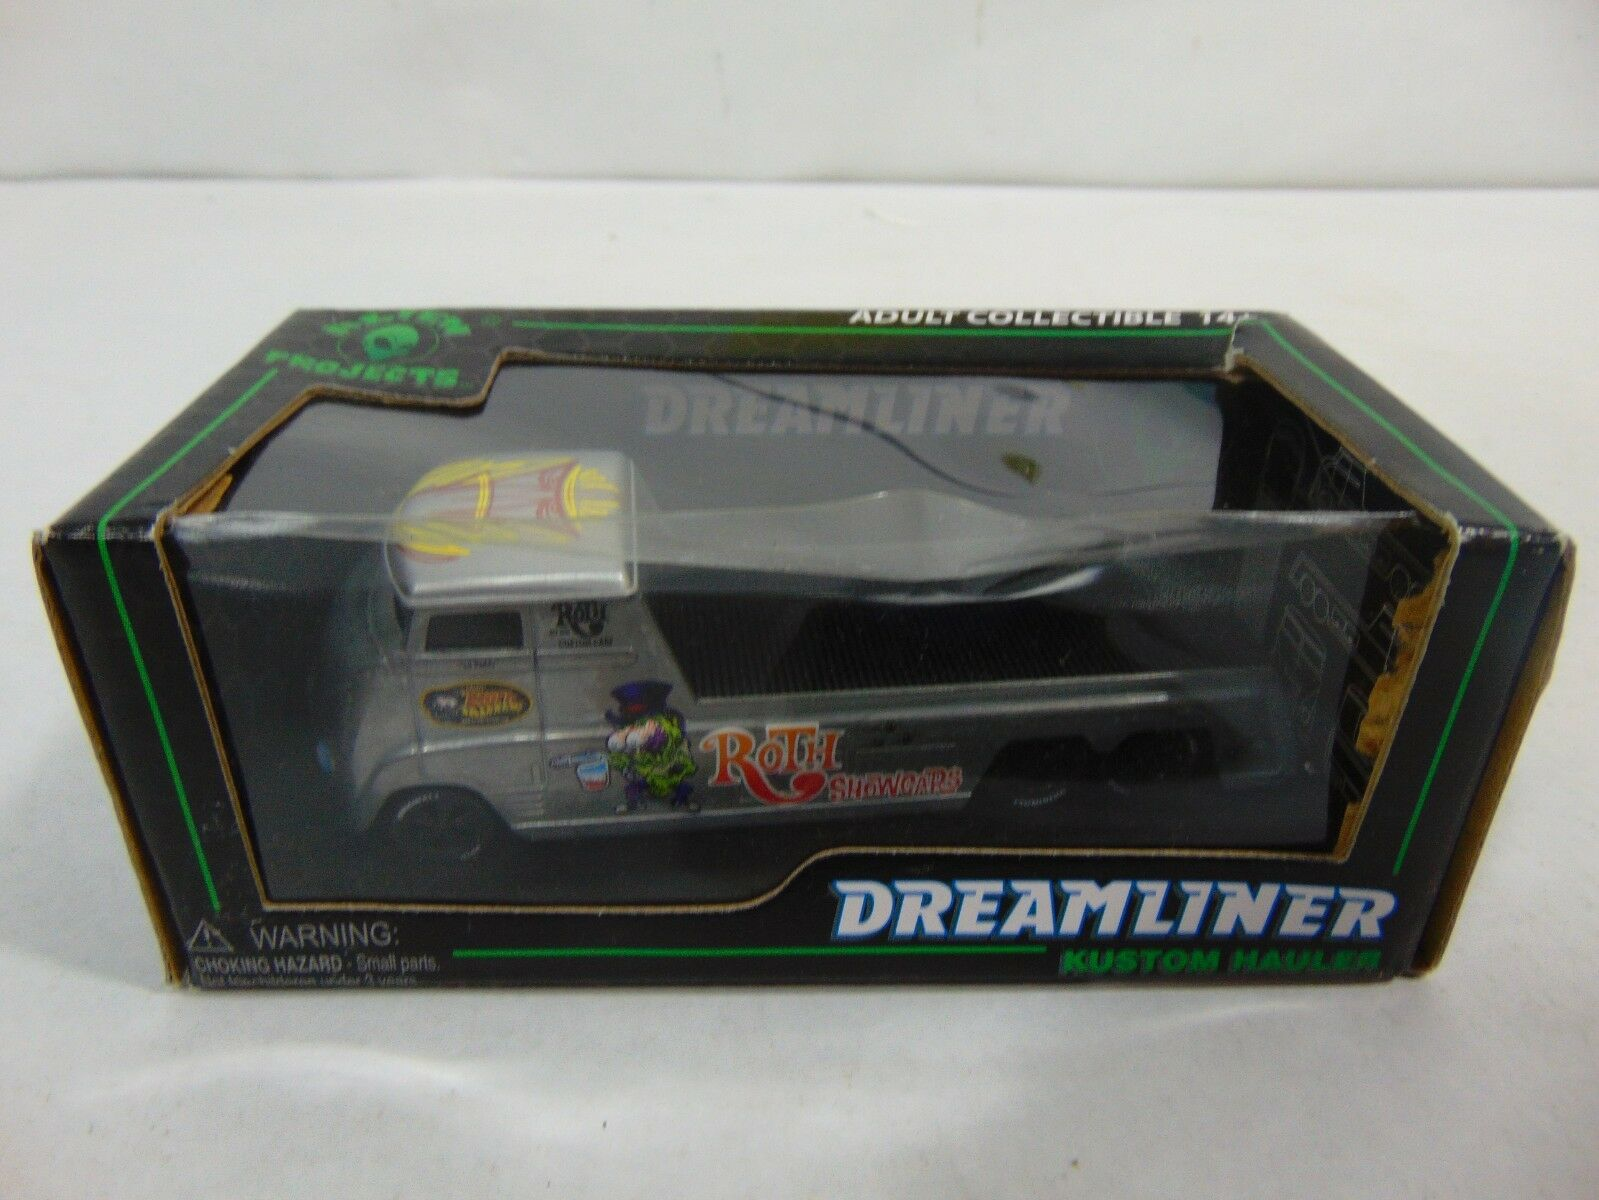 Dreamliner Limited Edition Alien Projects redh Showcars Alloy Edition Chase 237